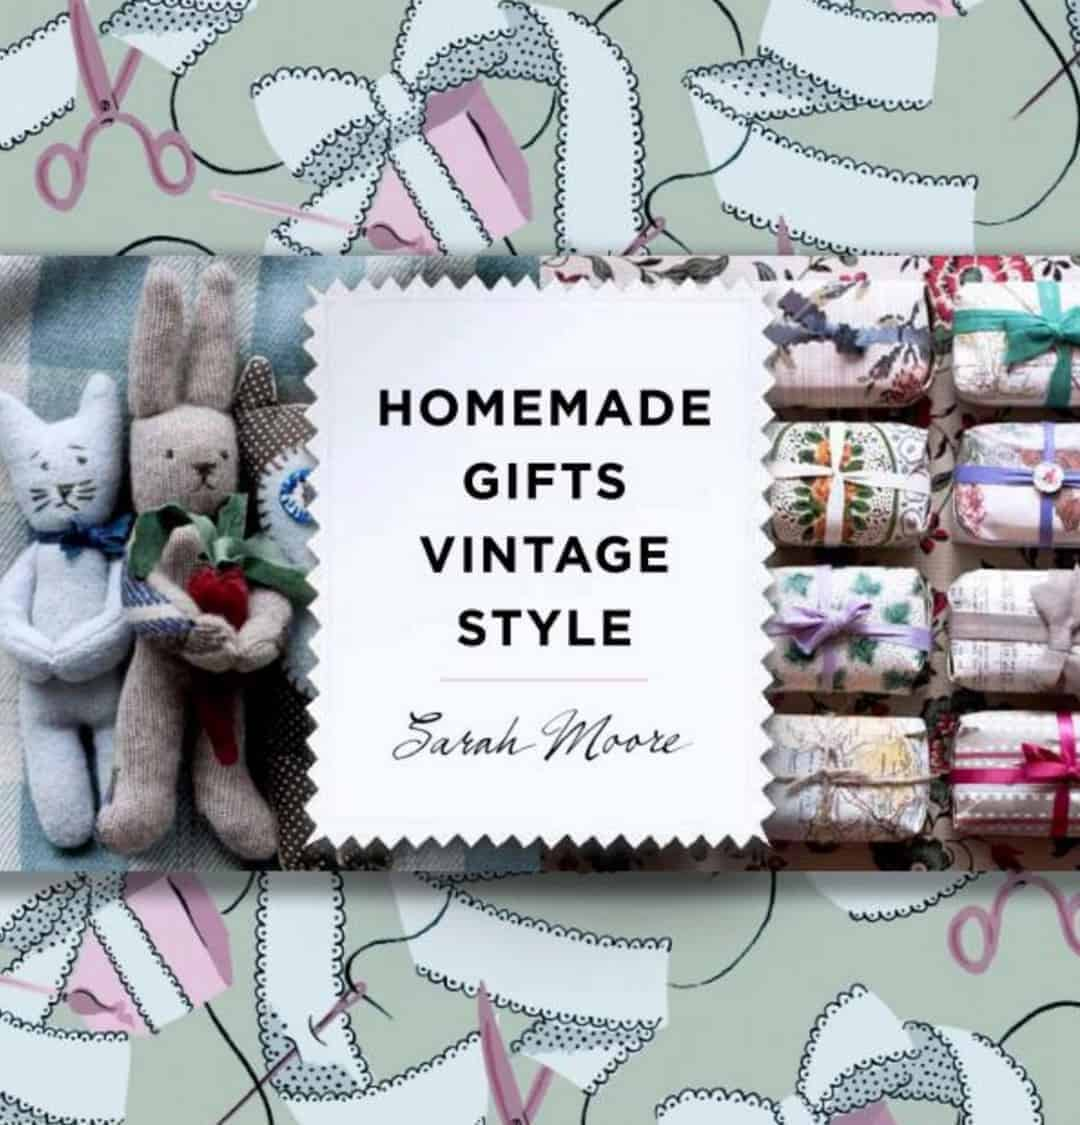 homemade-gifts-vintage-style